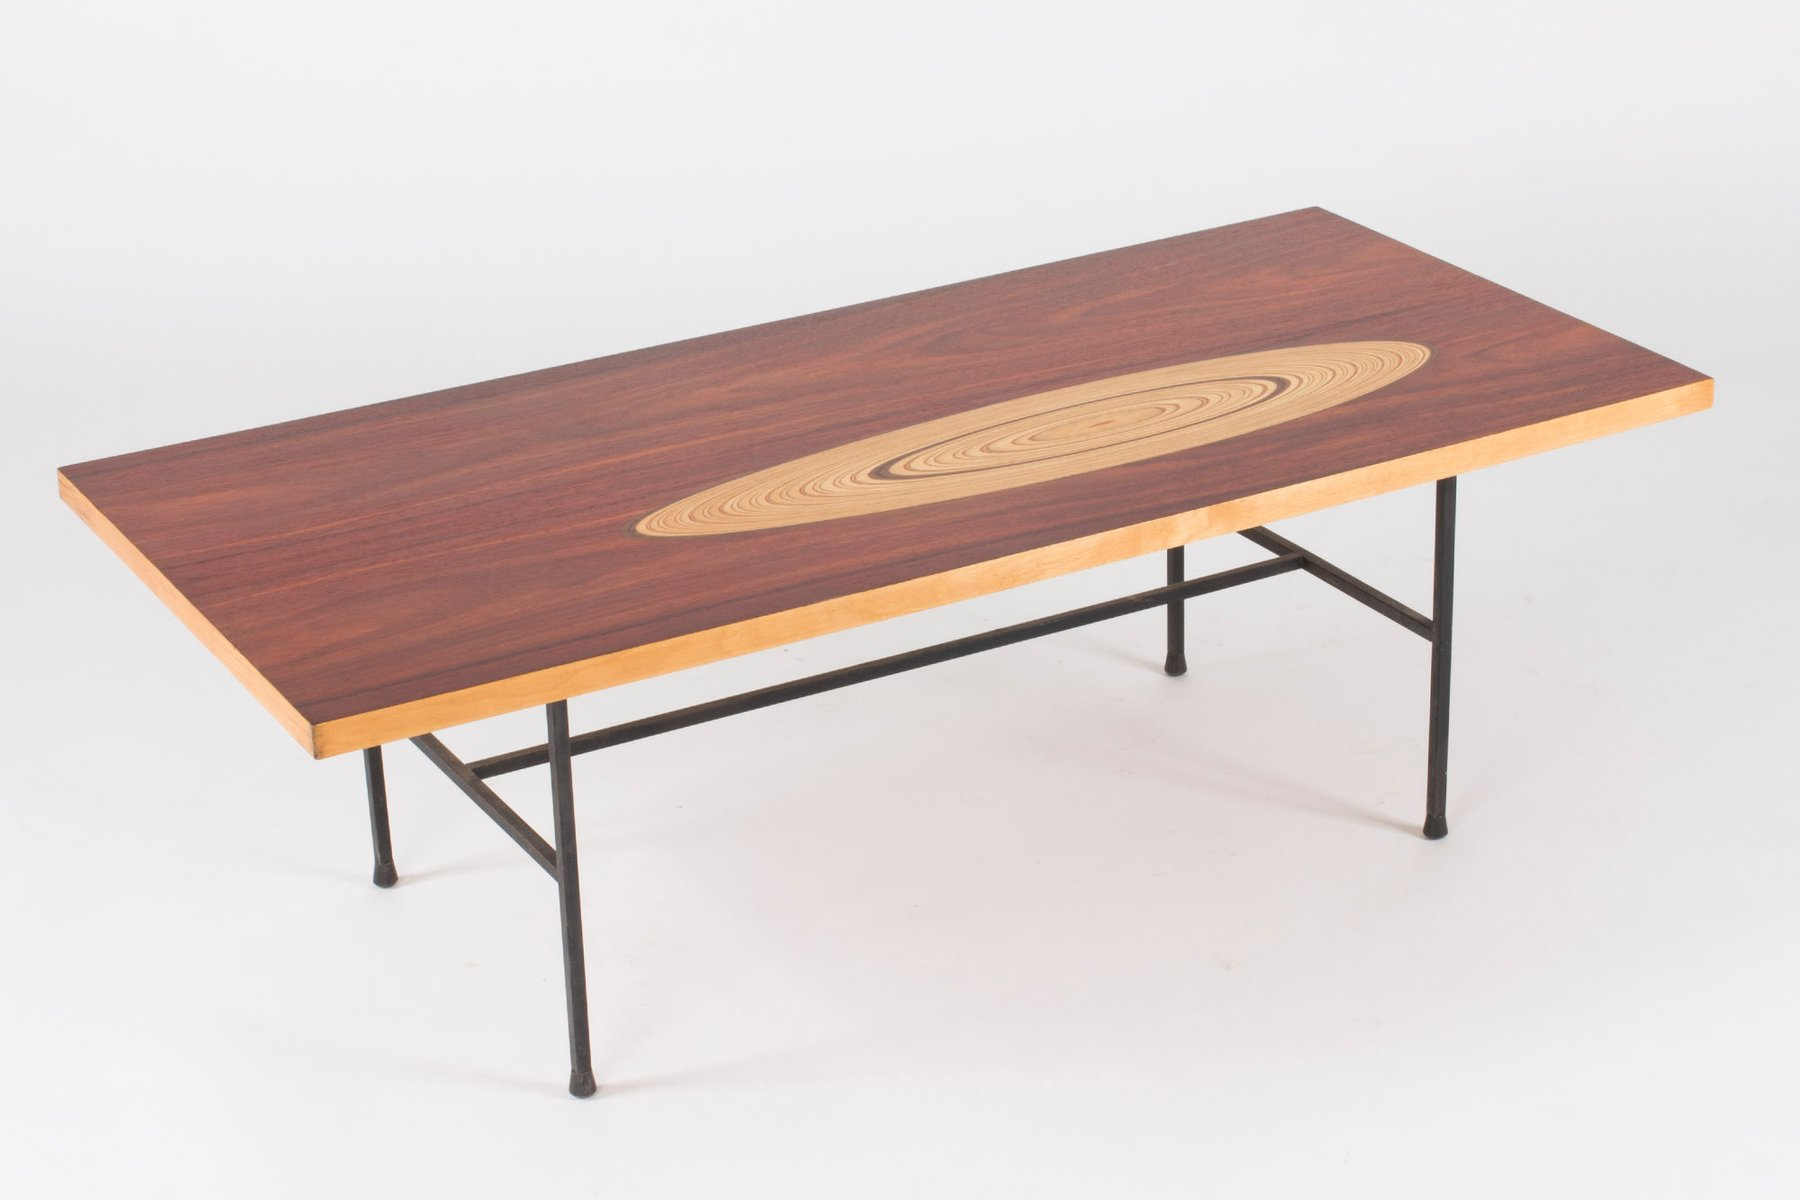 Coffee Table By Tapio Wirkkala 1950s For Sale At Pamono